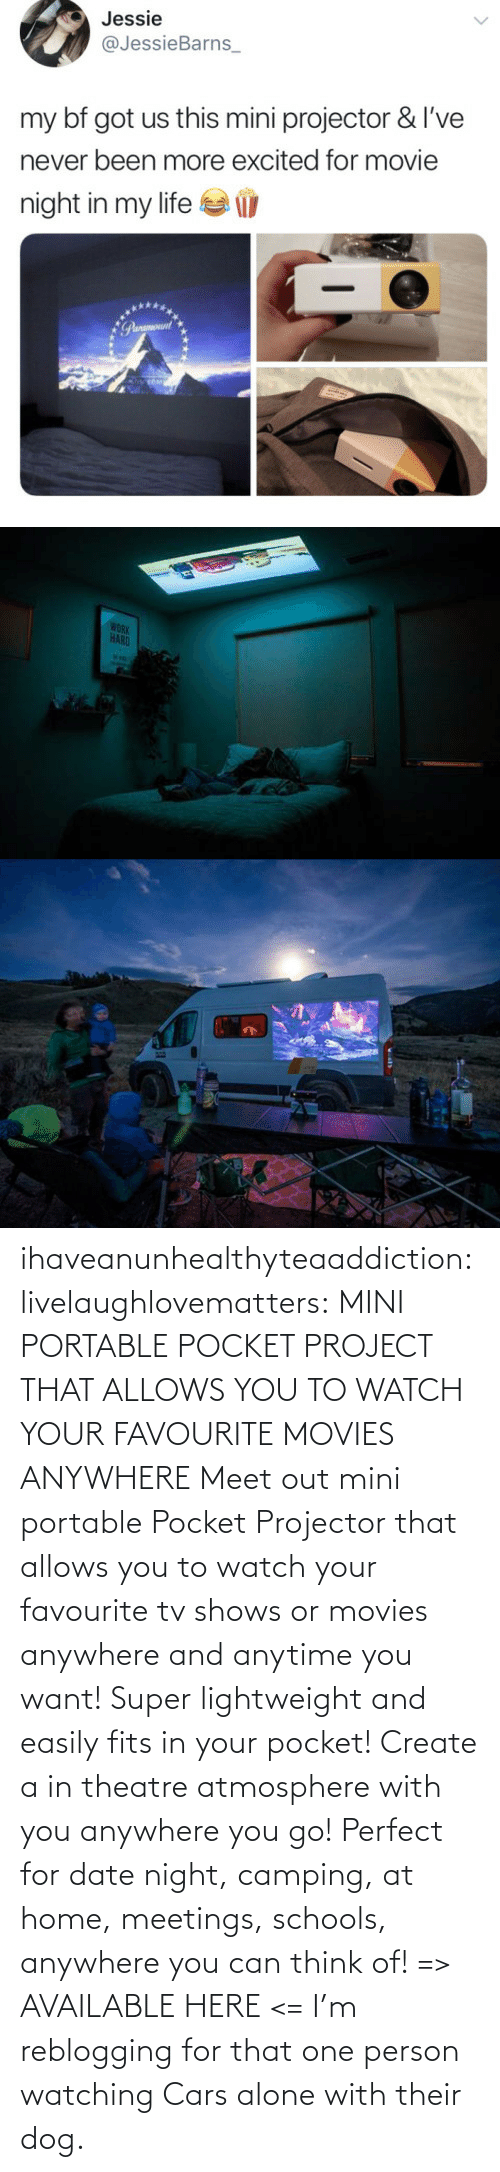 person: ihaveanunhealthyteaaddiction:  livelaughlovematters: MINI PORTABLE POCKET PROJECT THAT ALLOWS YOU TO WATCH YOUR FAVOURITE MOVIES ANYWHERE Meet out mini portable Pocket Projector that allows you to watch your favourite tv shows or movies anywhere and anytime you want! Super lightweight and easily fits in your pocket! Create a in theatre atmosphere with you anywhere you go! Perfect for date night, camping, at home, meetings, schools, anywhere you can think of! => AVAILABLE HERE <=    I'm reblogging for that one person watching Cars alone with their dog.